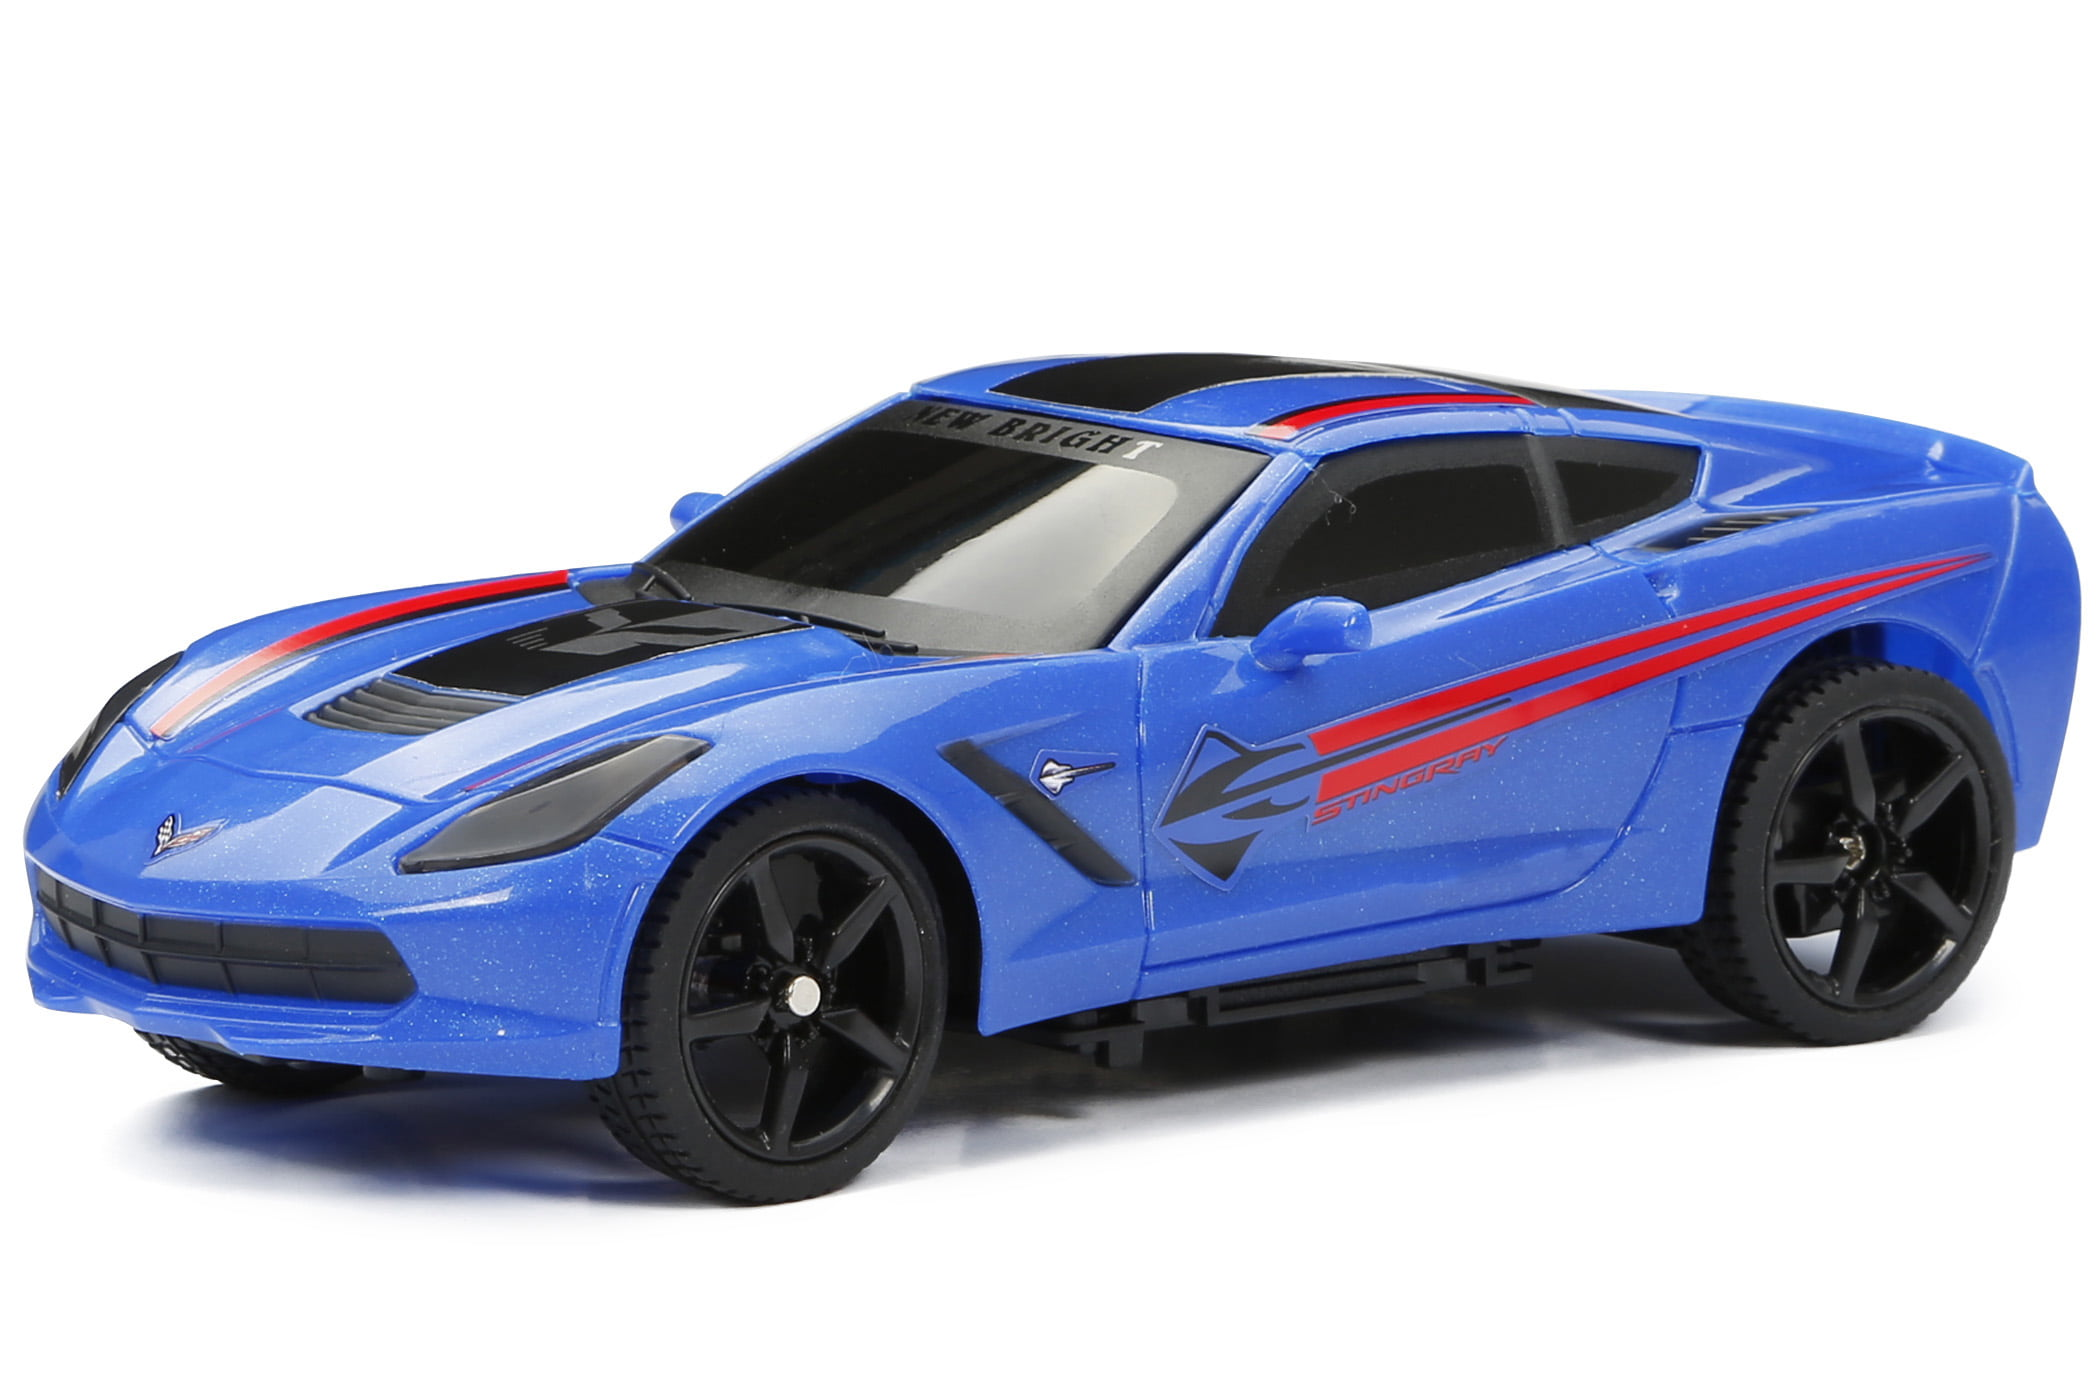 New Bright RC 1:24 Radio Control Car Corvette C7 by New Bright Industrial Co., Ltd.